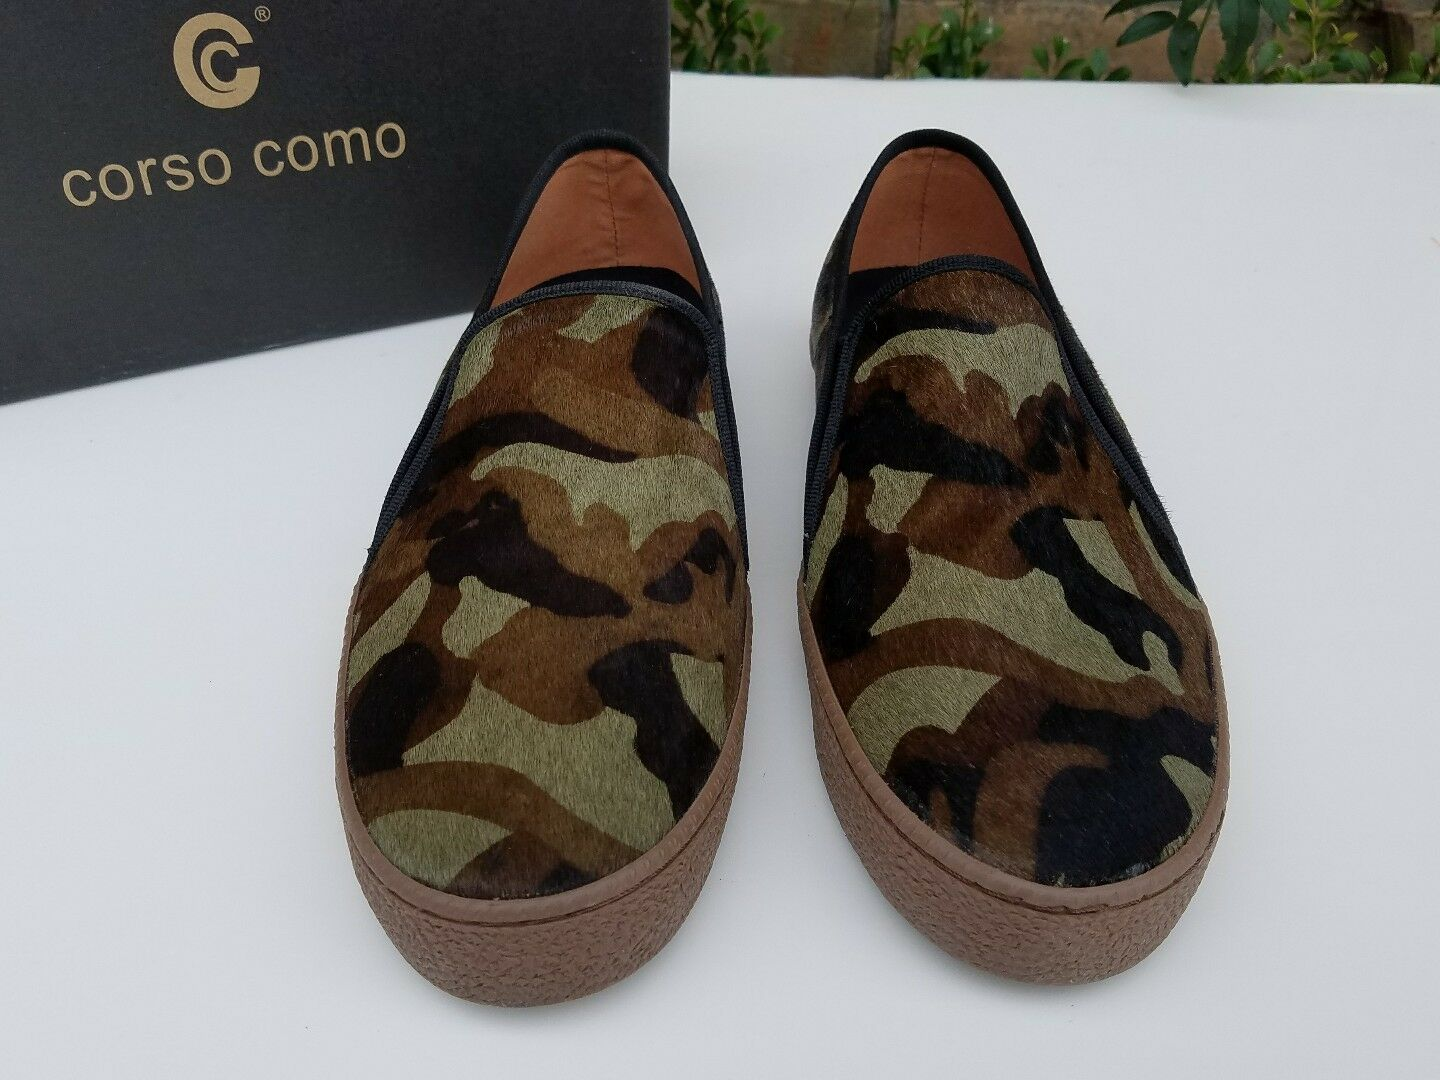 130 Corso Como Green  Braun Camouflage Calf Hair Slip On lexie Loafers